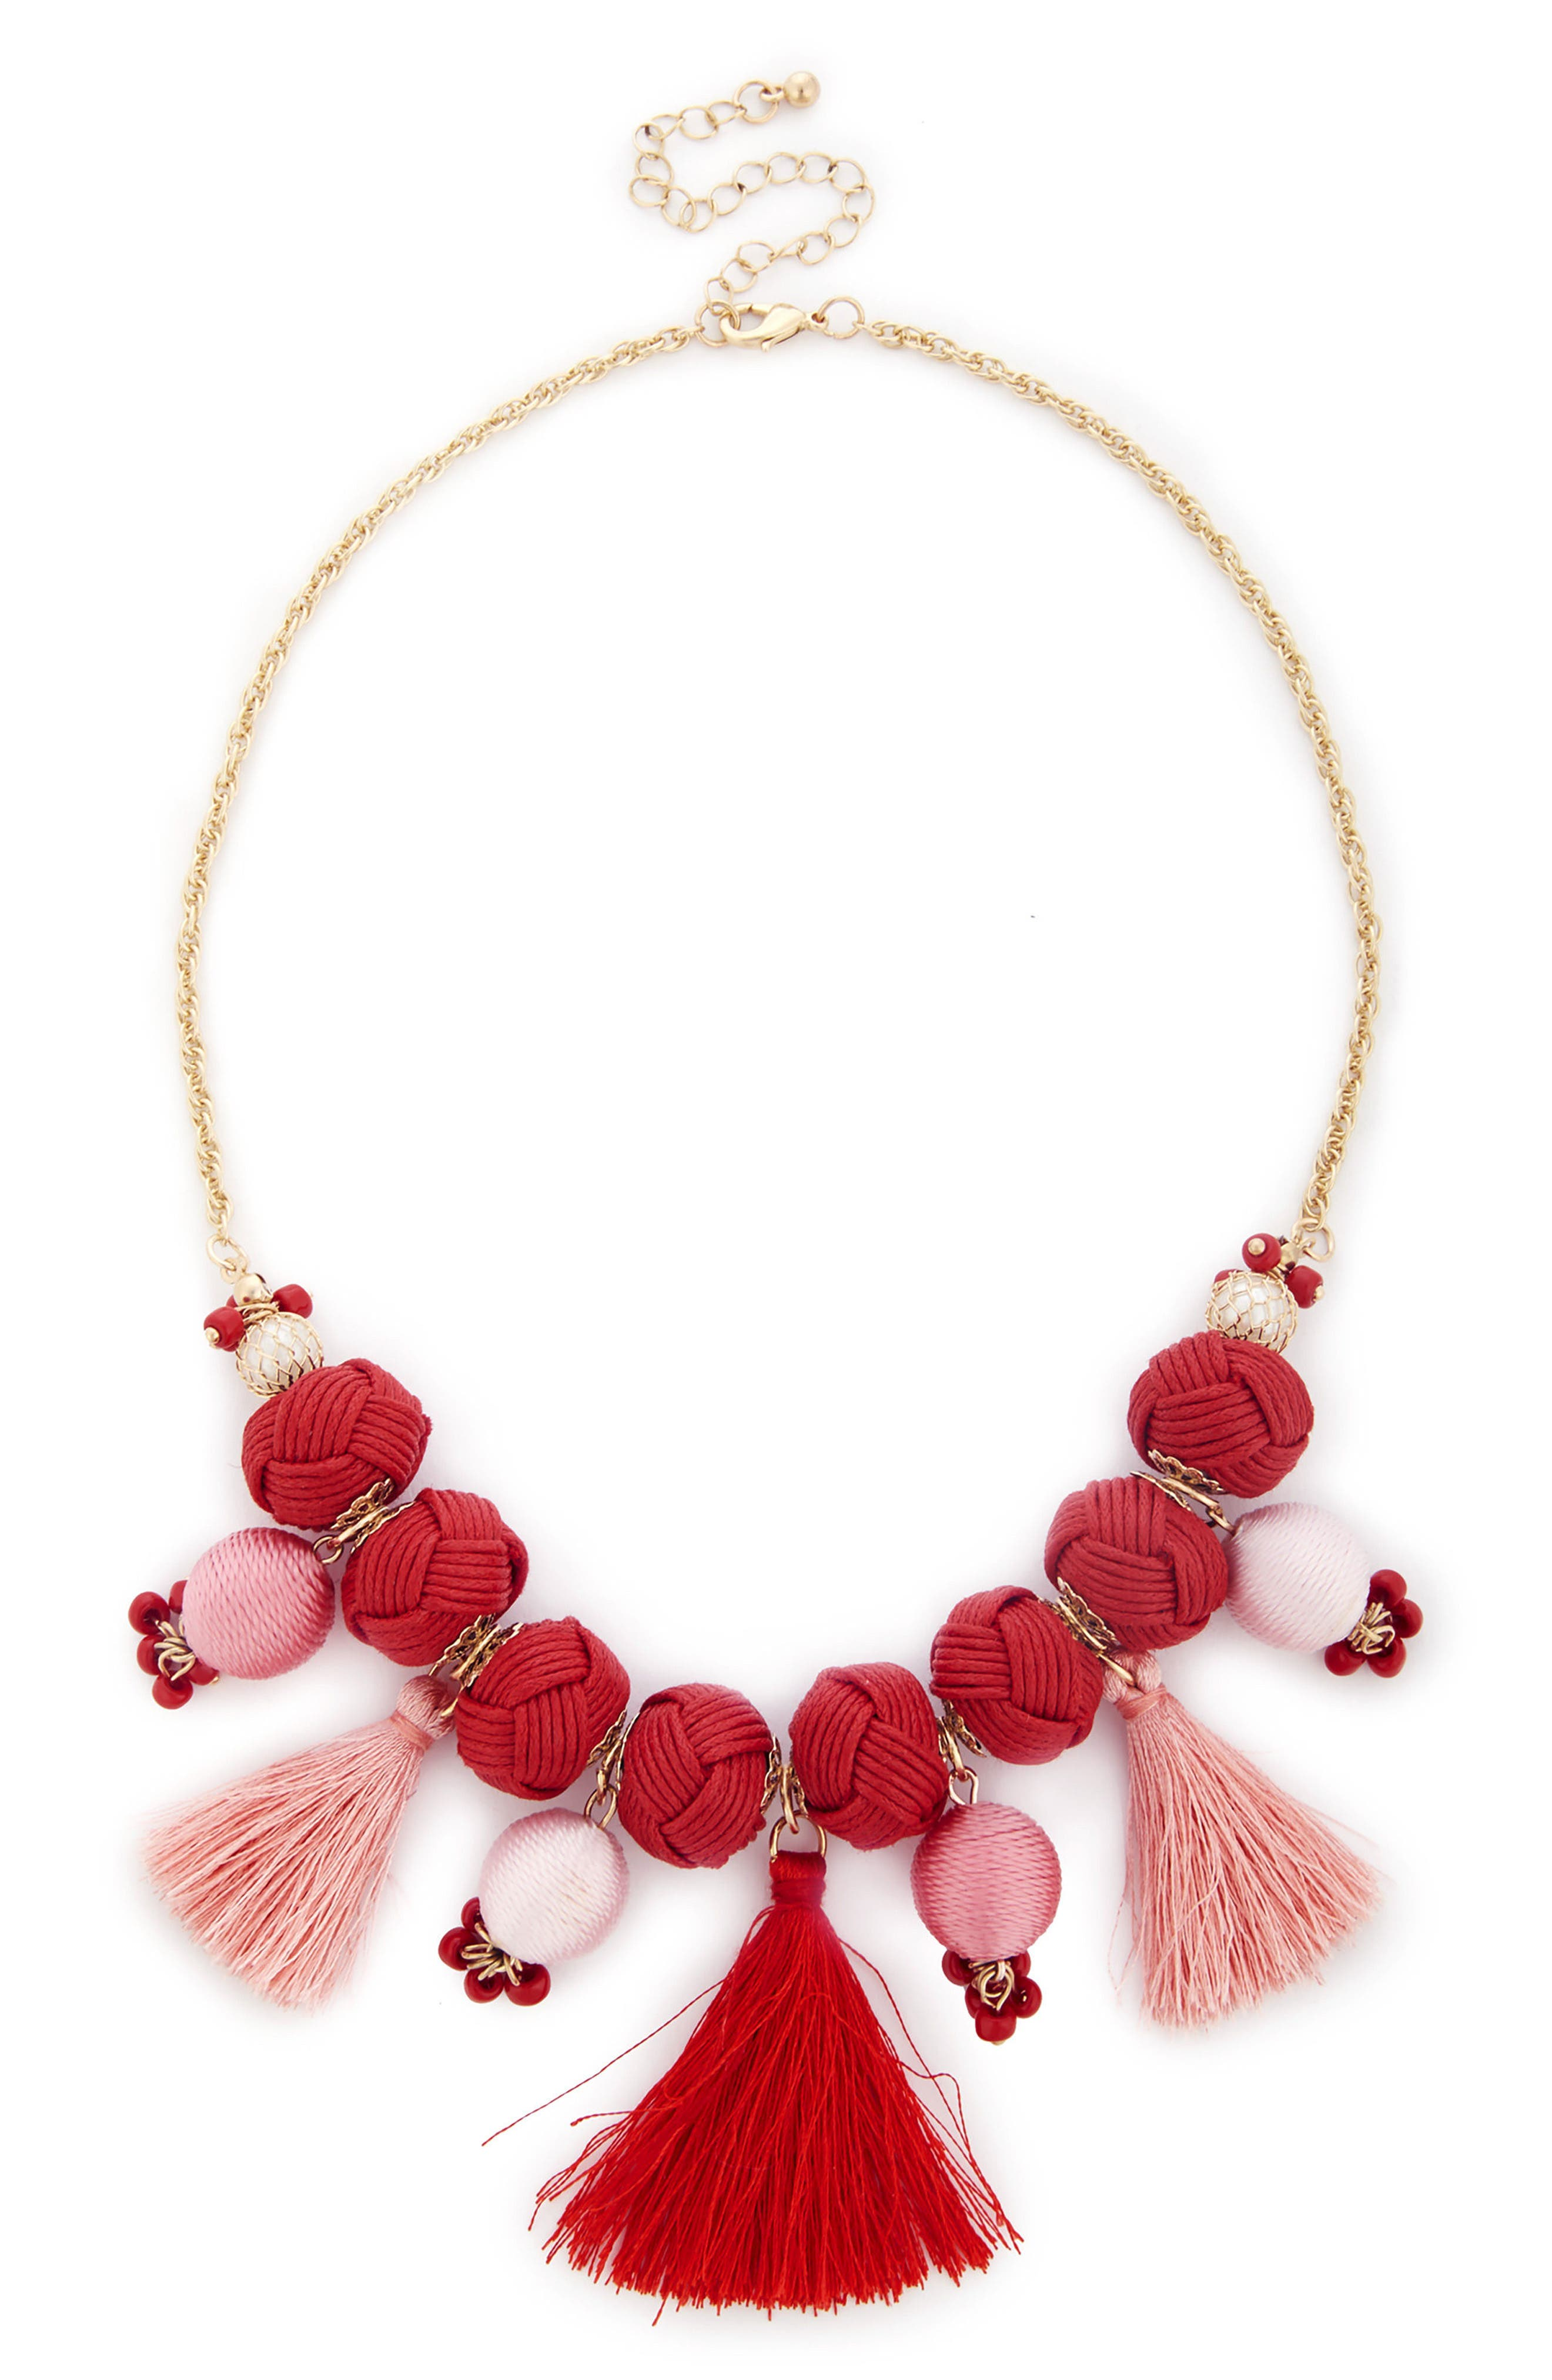 SOLE SOCIETY,                             Meeko Tassel Statement Necklace,                             Main thumbnail 1, color,                             660